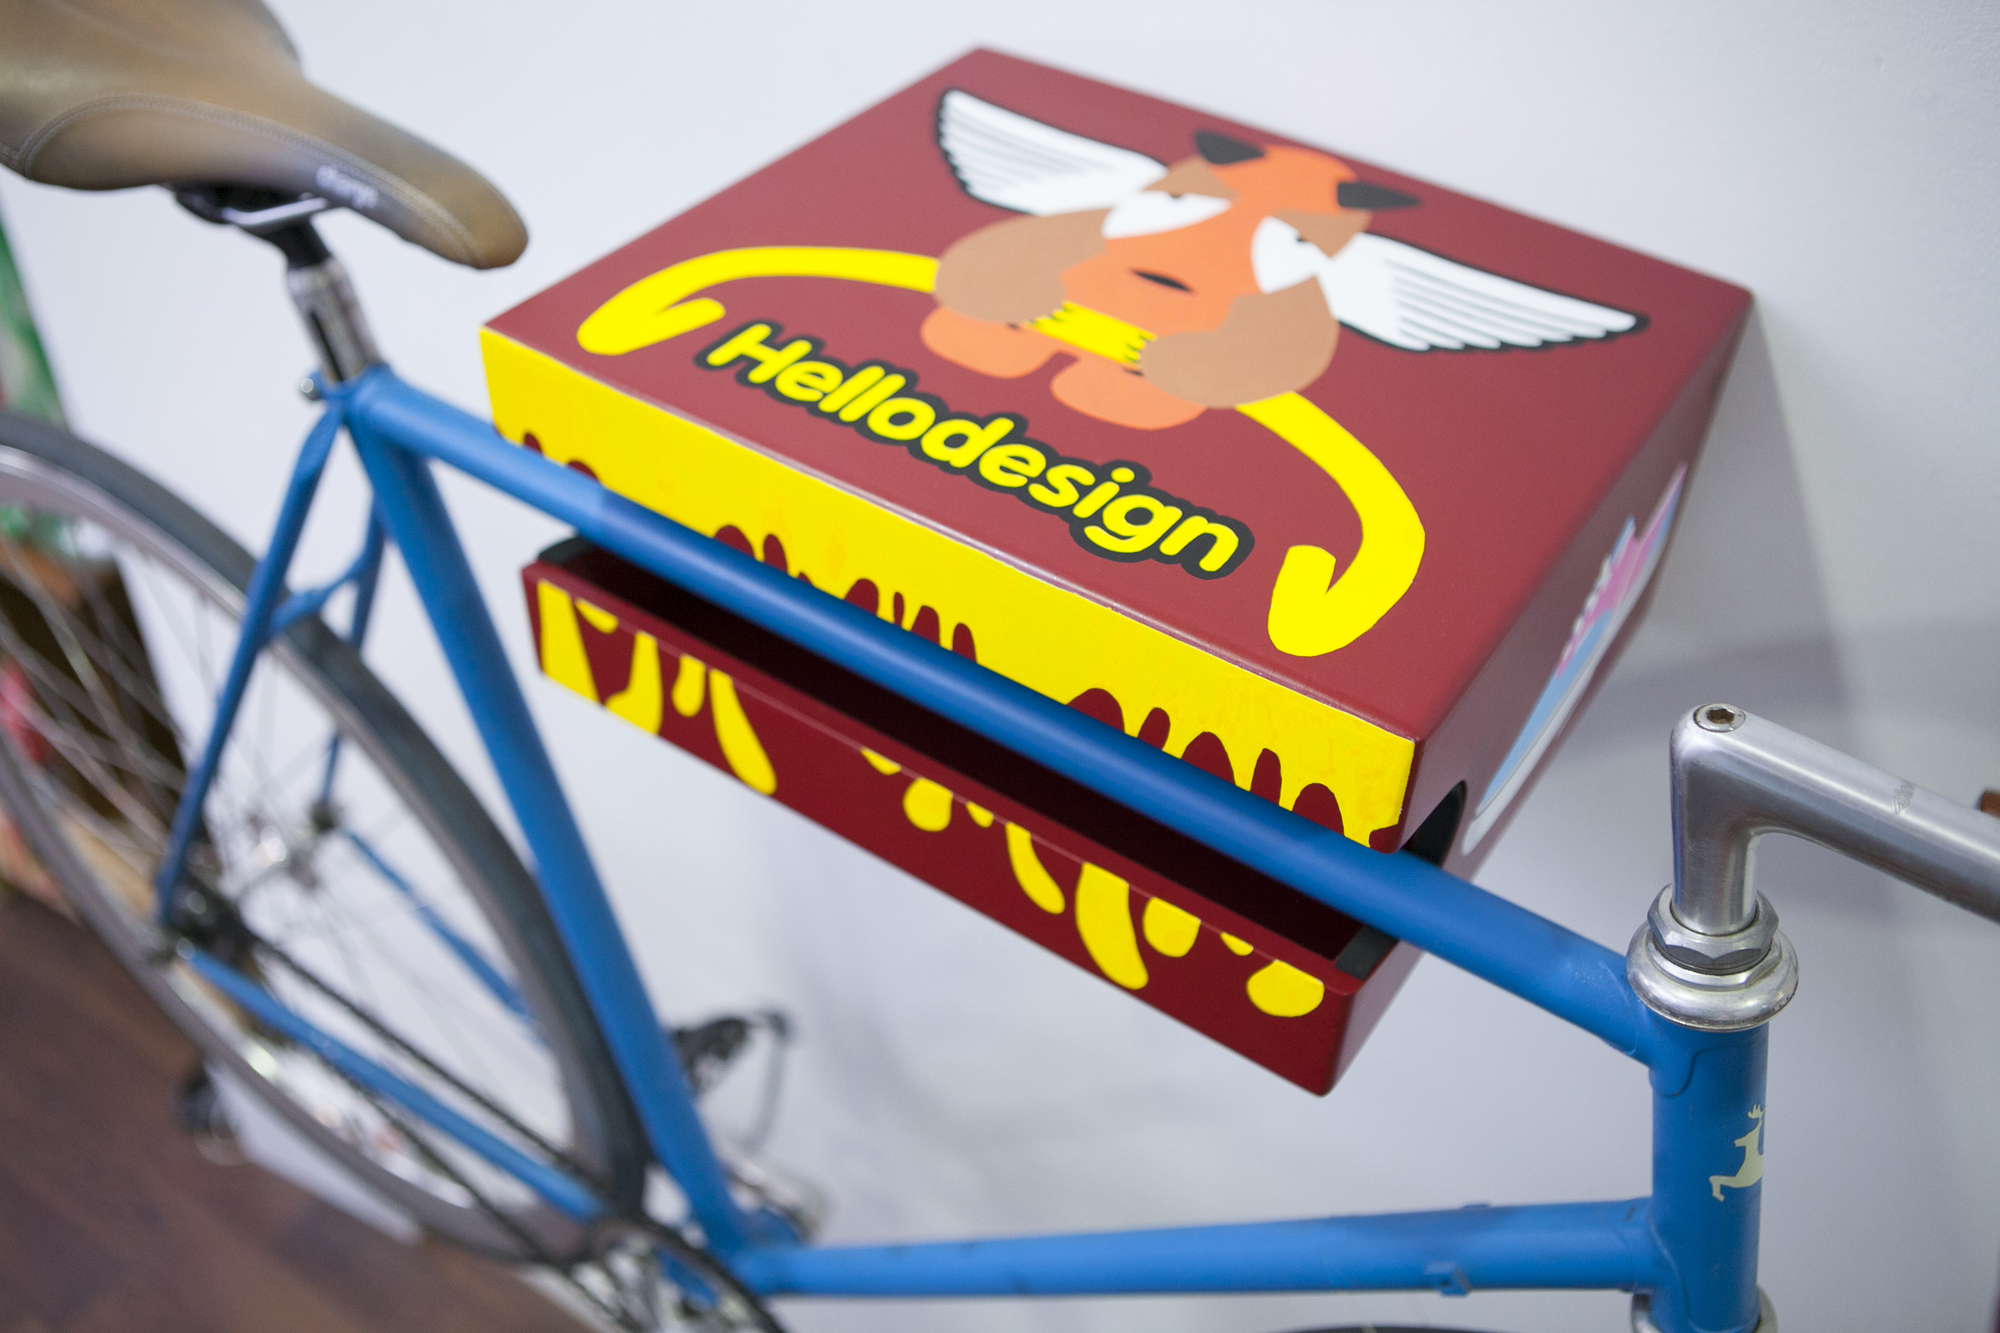 Hellodesign_custom_bike_holder_05